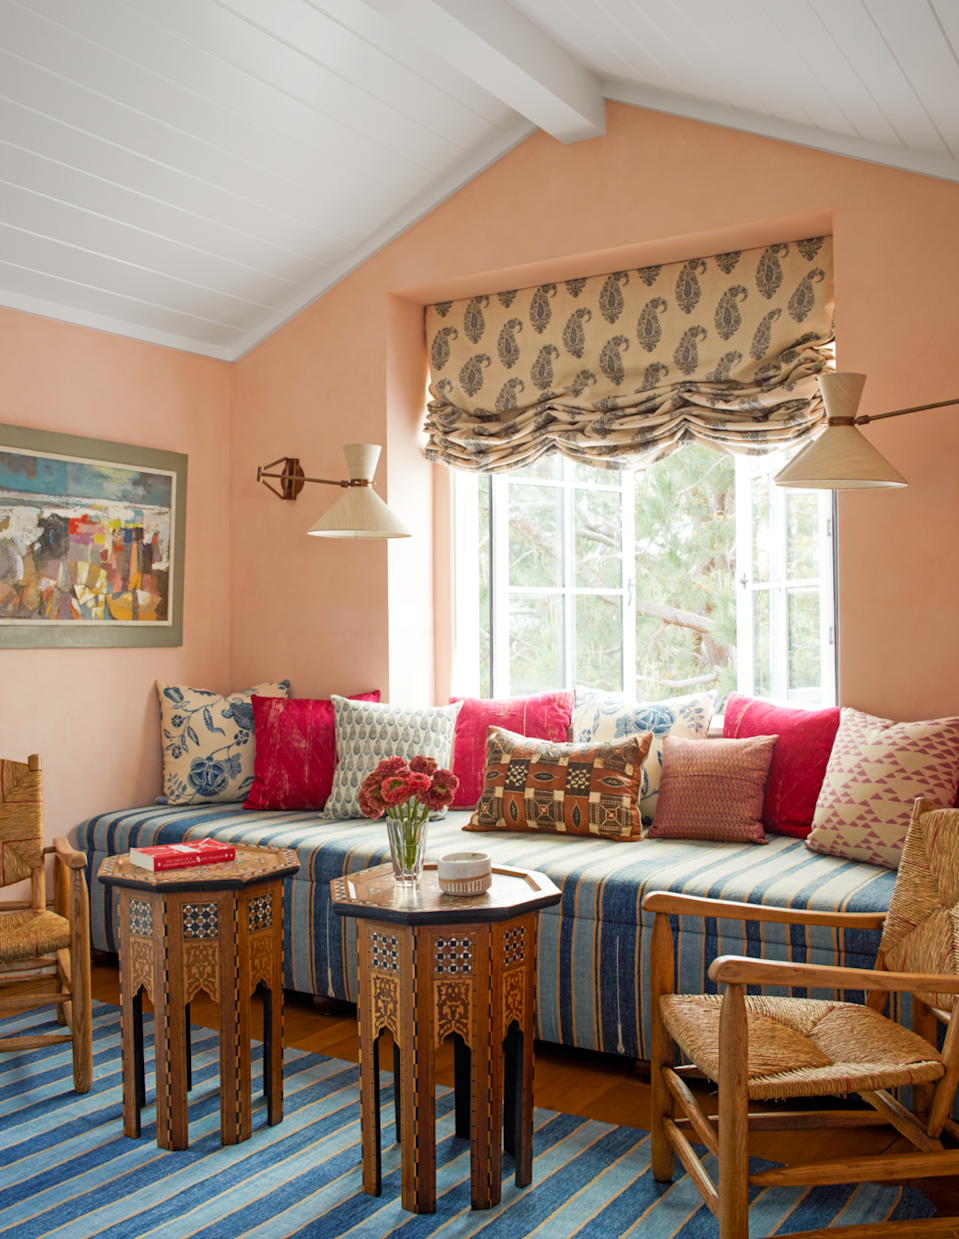 """<p>Soft and peachy pinks have a calming effect, especially when paired with rich textiles like in this <a href=""""https://peterdunhamtextiles.com/"""" rel=""""nofollow noopener"""" target=""""_blank"""" data-ylk=""""slk:Peter Dunham"""" class=""""link rapid-noclick-resp"""">Peter Dunham</a>–designed <a href=""""https://www.veranda.com/home-decorators/a30735967/peter-dunham-california-house-tour/"""" rel=""""nofollow noopener"""" target=""""_blank"""" data-ylk=""""slk:Newport Beach home."""" class=""""link rapid-noclick-resp"""">Newport Beach home.</a> Indian cotton dhurries grace the sofa and floor, and the sconces are <a href=""""https://www.richardtaylordesigns.co.uk/"""" rel=""""nofollow noopener"""" target=""""_blank"""" data-ylk=""""slk:Richard Taylor Designs"""" class=""""link rapid-noclick-resp"""">Richard Taylor Designs</a>.</p><p><a class=""""link rapid-noclick-resp"""" href=""""https://www.farrow-ball.com/en-us/paint-colours/setting-plaster"""" rel=""""nofollow noopener"""" target=""""_blank"""" data-ylk=""""slk:Get the Look"""">Get the Look</a></p>"""